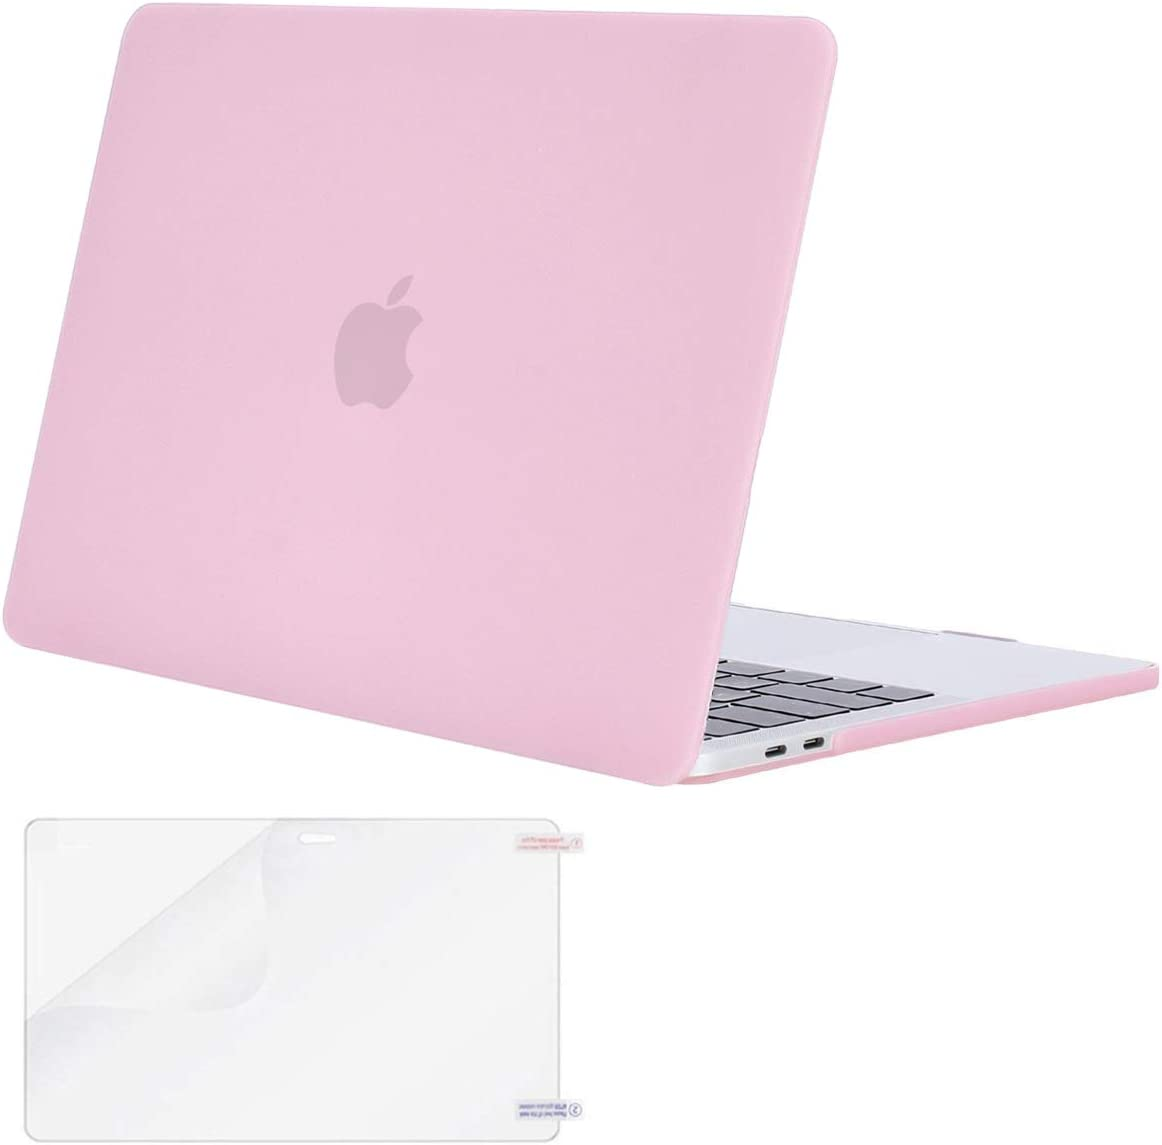 MOSISO MacBook Pro 13 inch Case 2019 2018 2017 2016 Release A2159 A1989 A1706 A1708, Plastic Hard Shell Case&Screen Protector Compatible with MacBook Pro 13 inch with/Without Touch Bar, Clear Pink